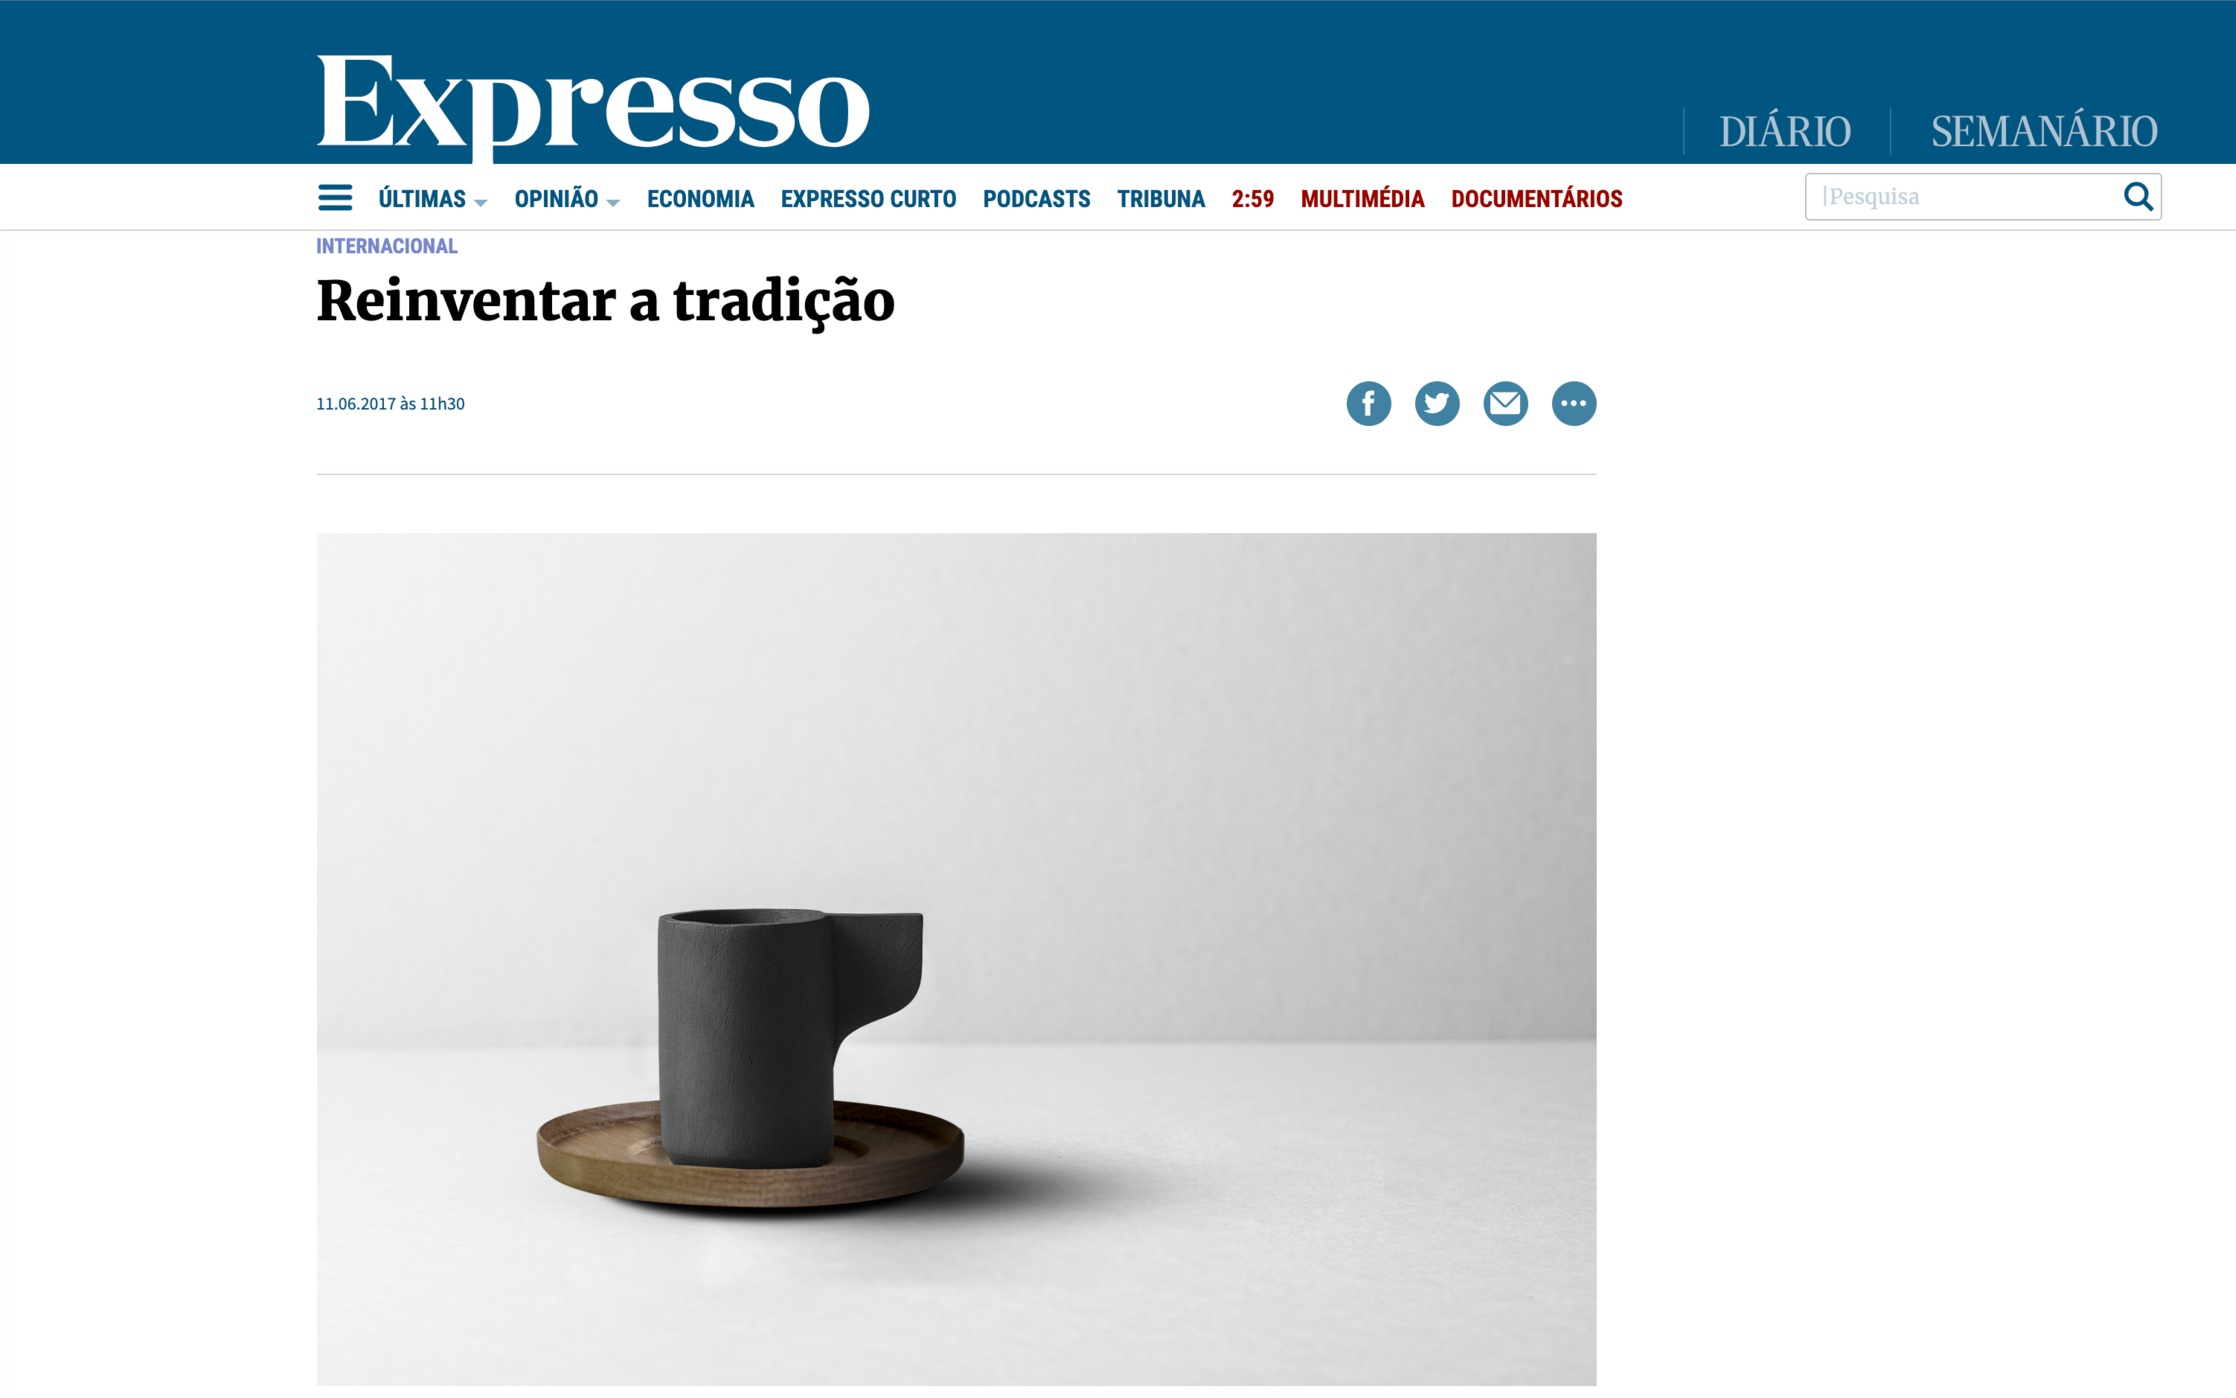 Reinventar a tradição in EXPRESSO by Katya Delimbeuf.png